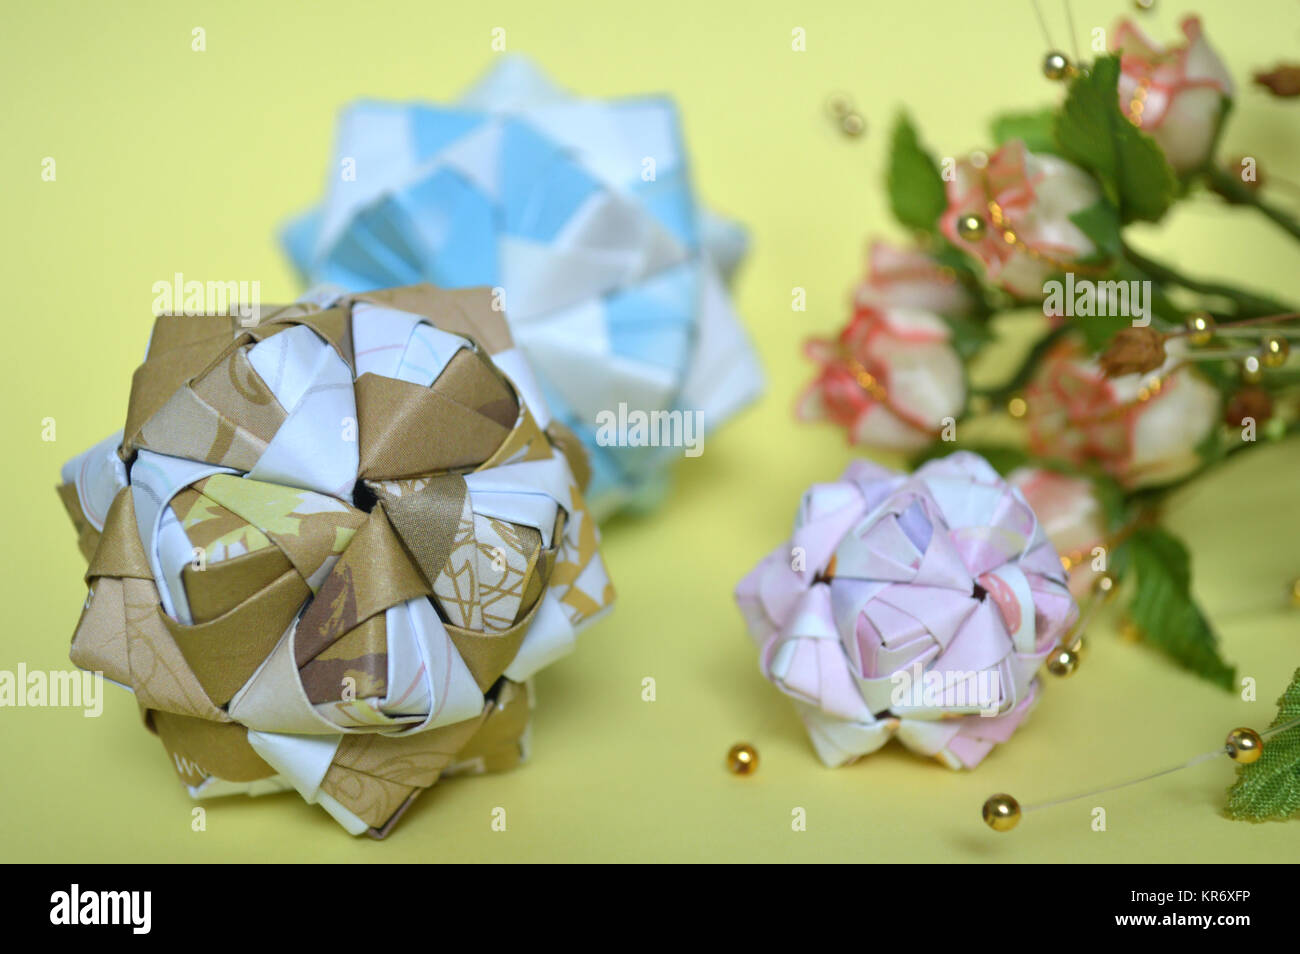 Origami Paper Flower Kusudama Stock Photos Origami Paper Flower